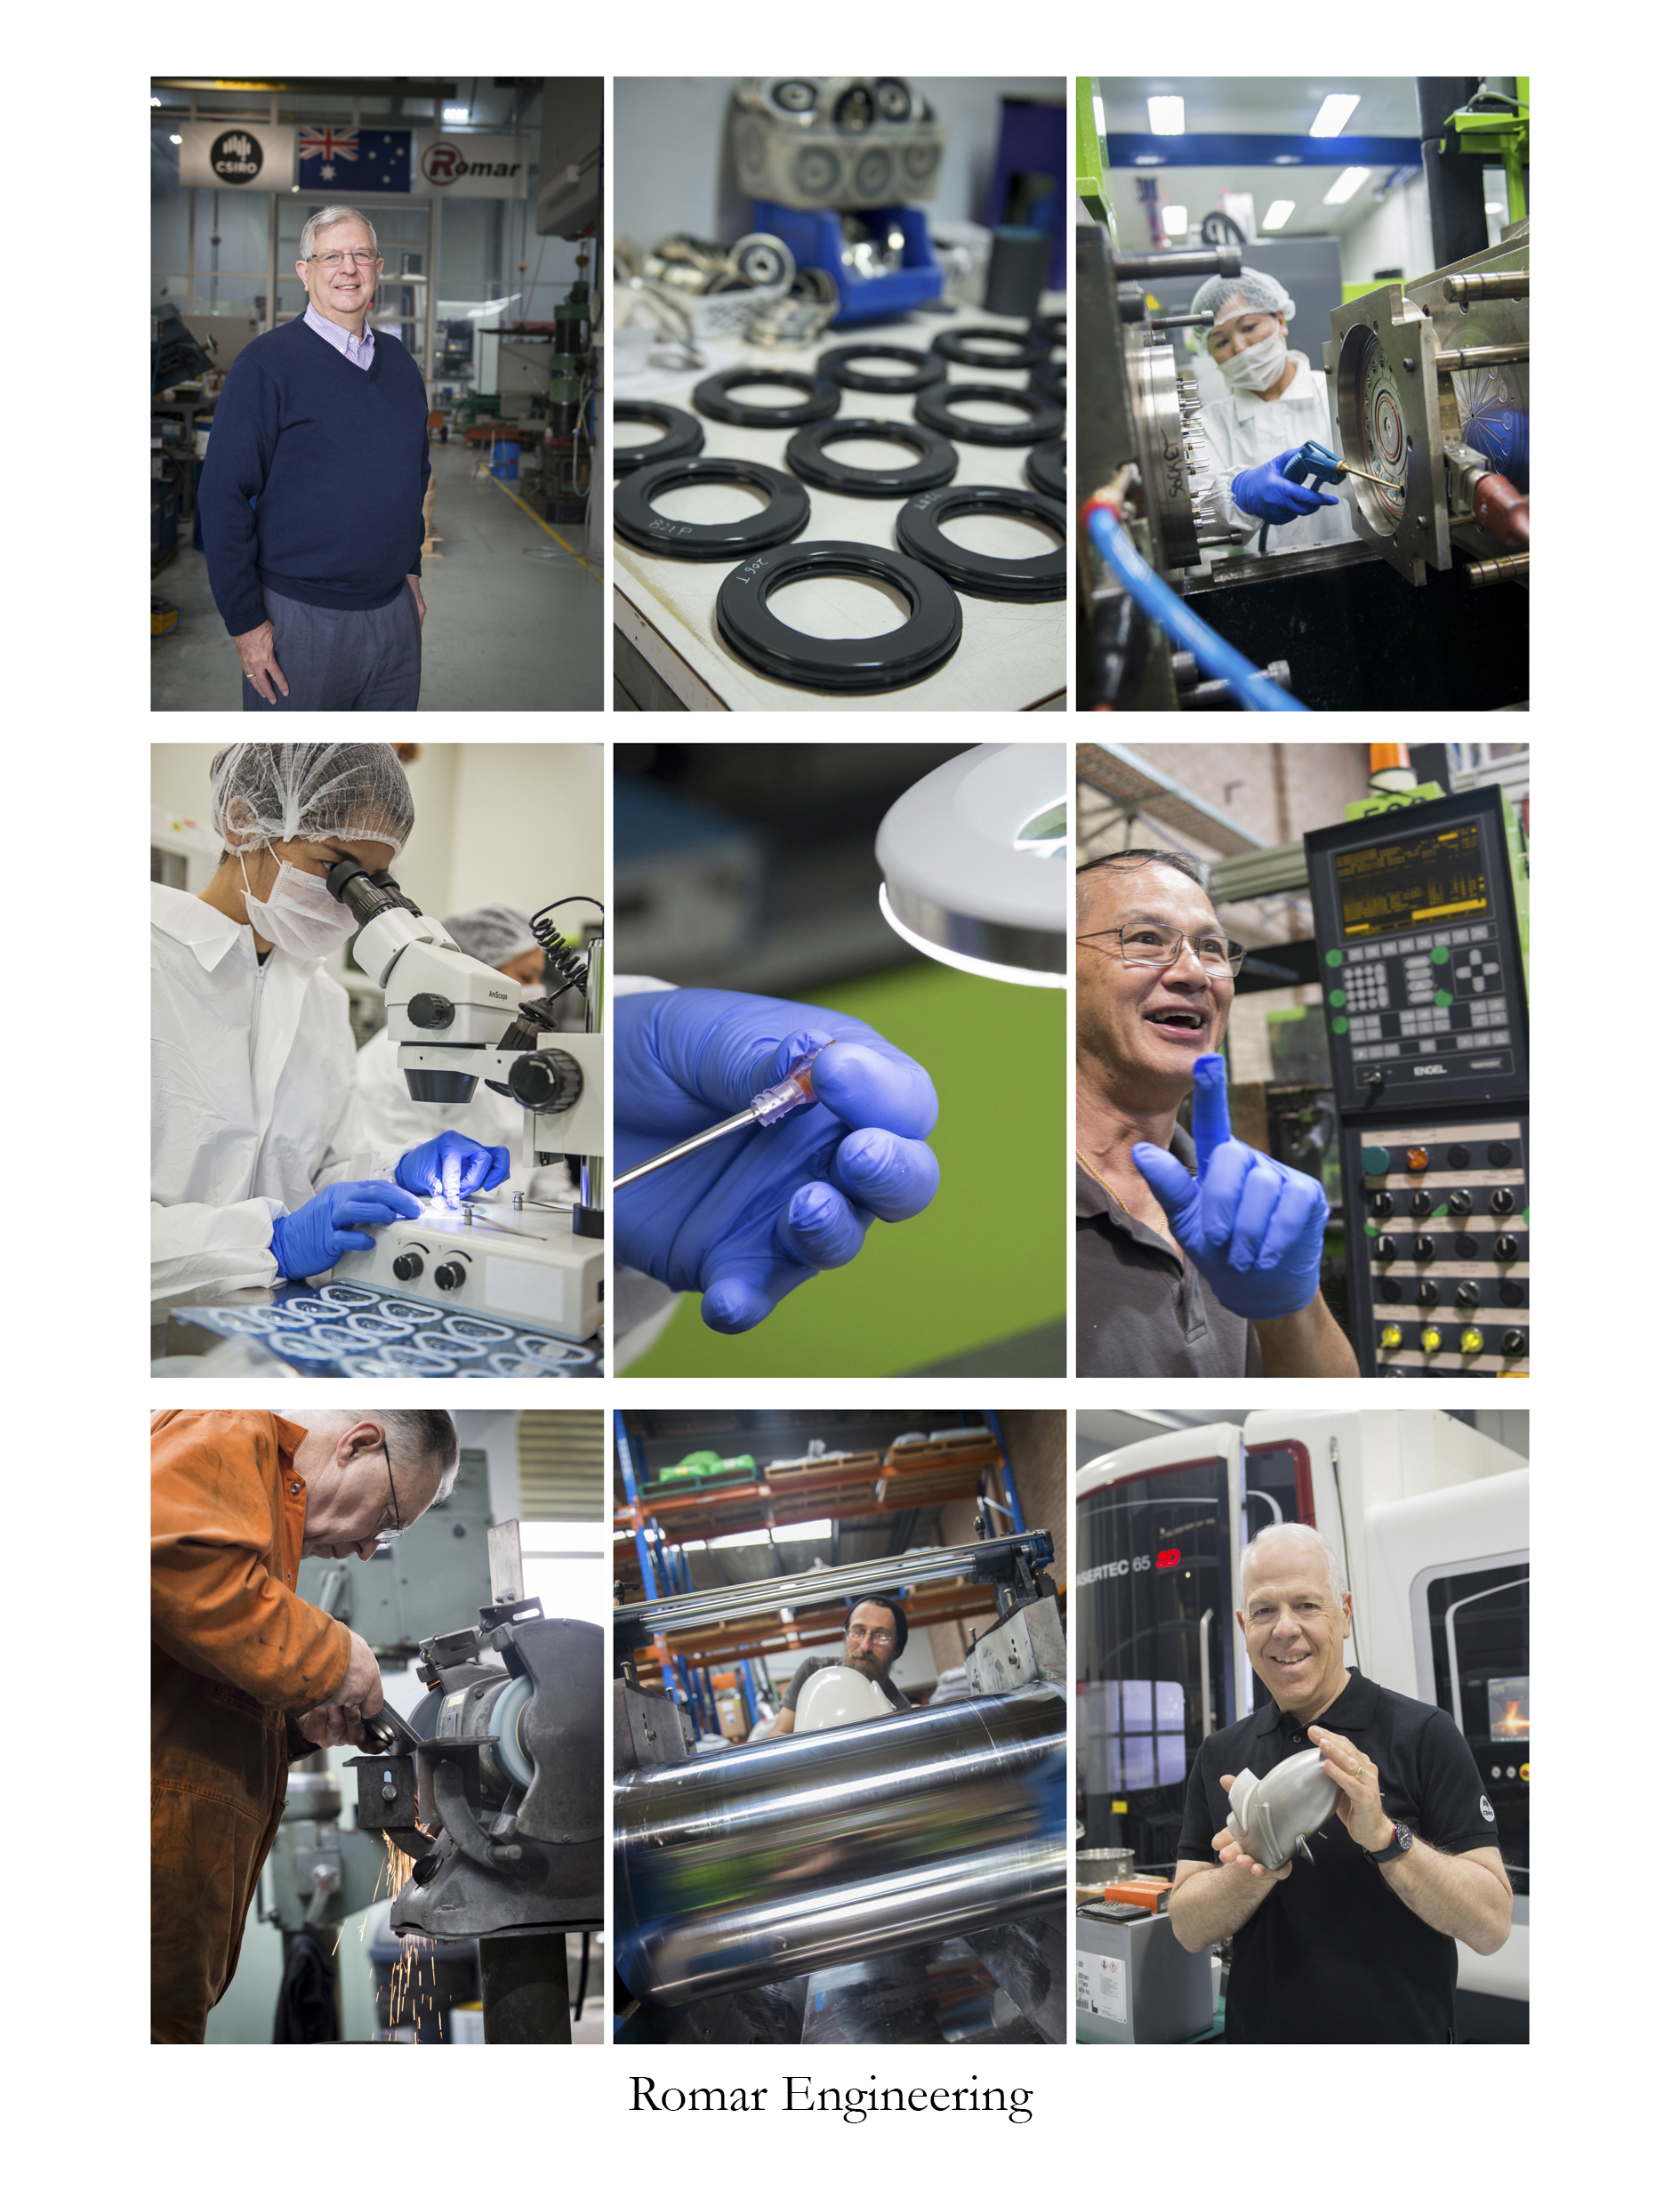 Romar Engineering needed a range of photos showing the people that work there and the technology that is used. Imagery needed to be used on their website and for marketing material.